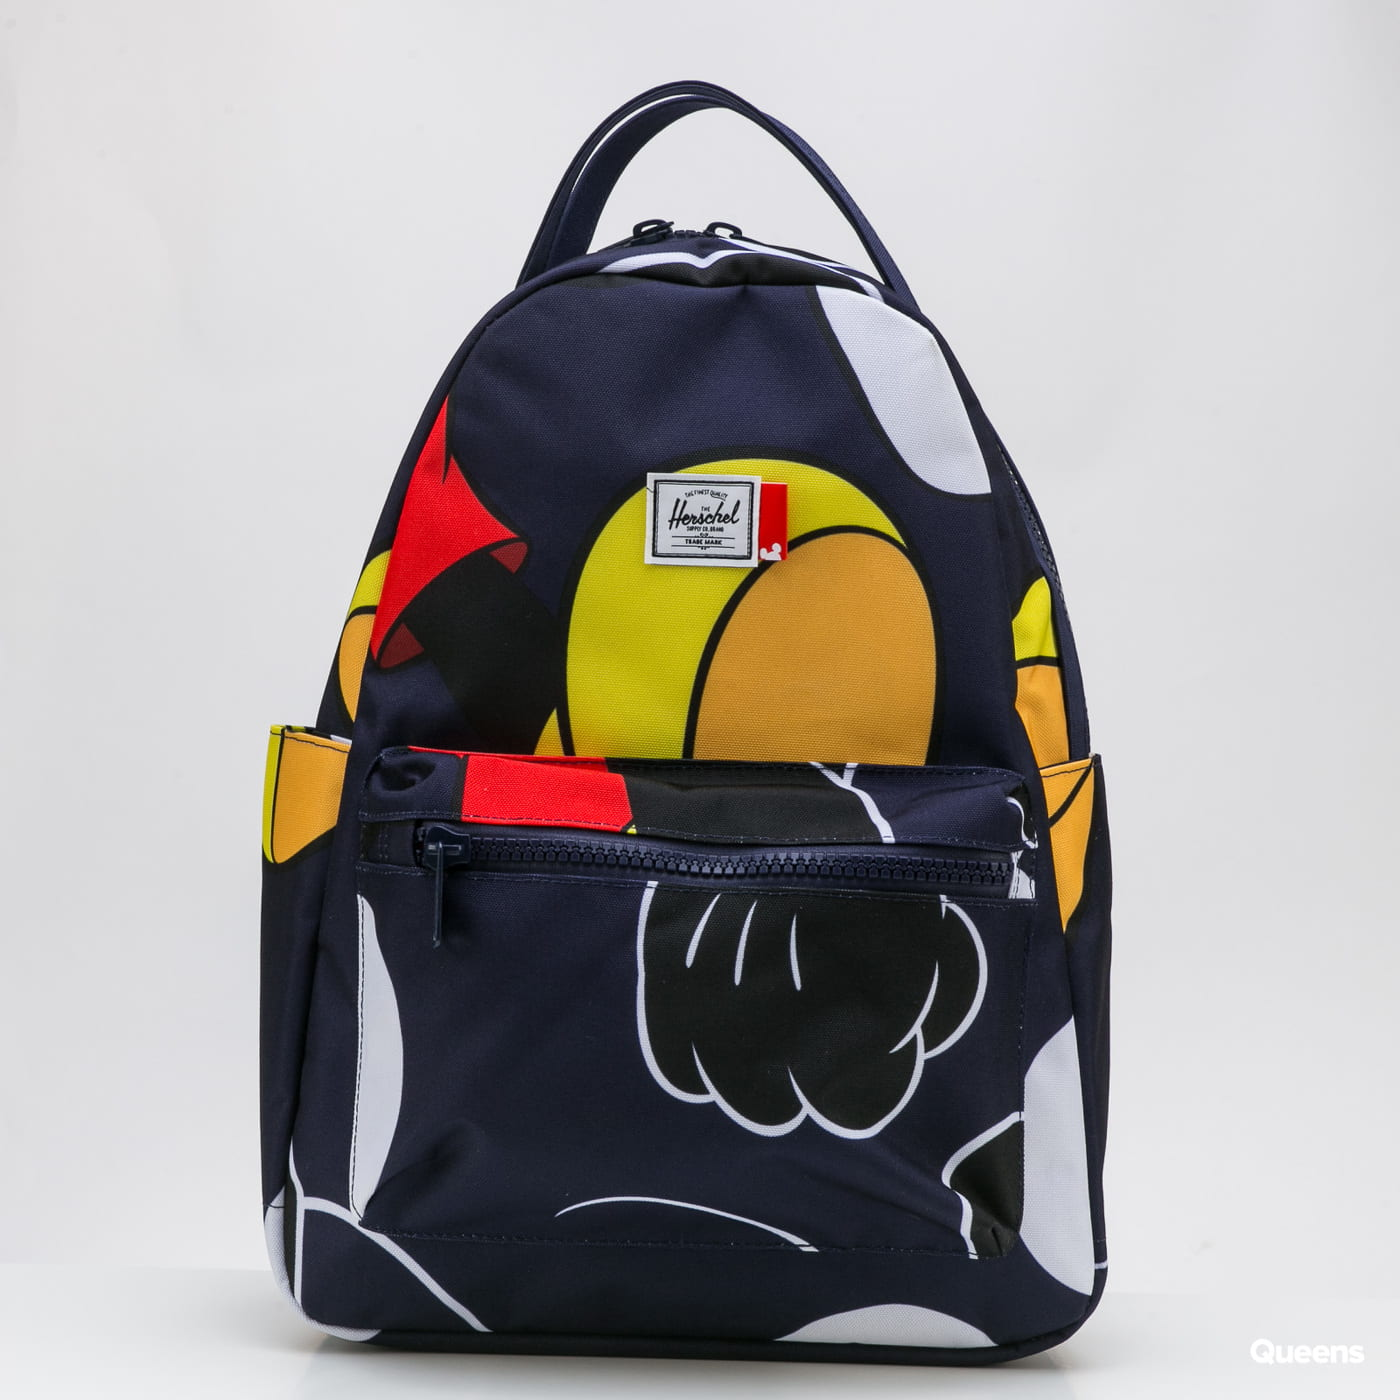 The Herschel Supply CO. Nova Mid Mickey Backpack navy / white / black / red / yellow